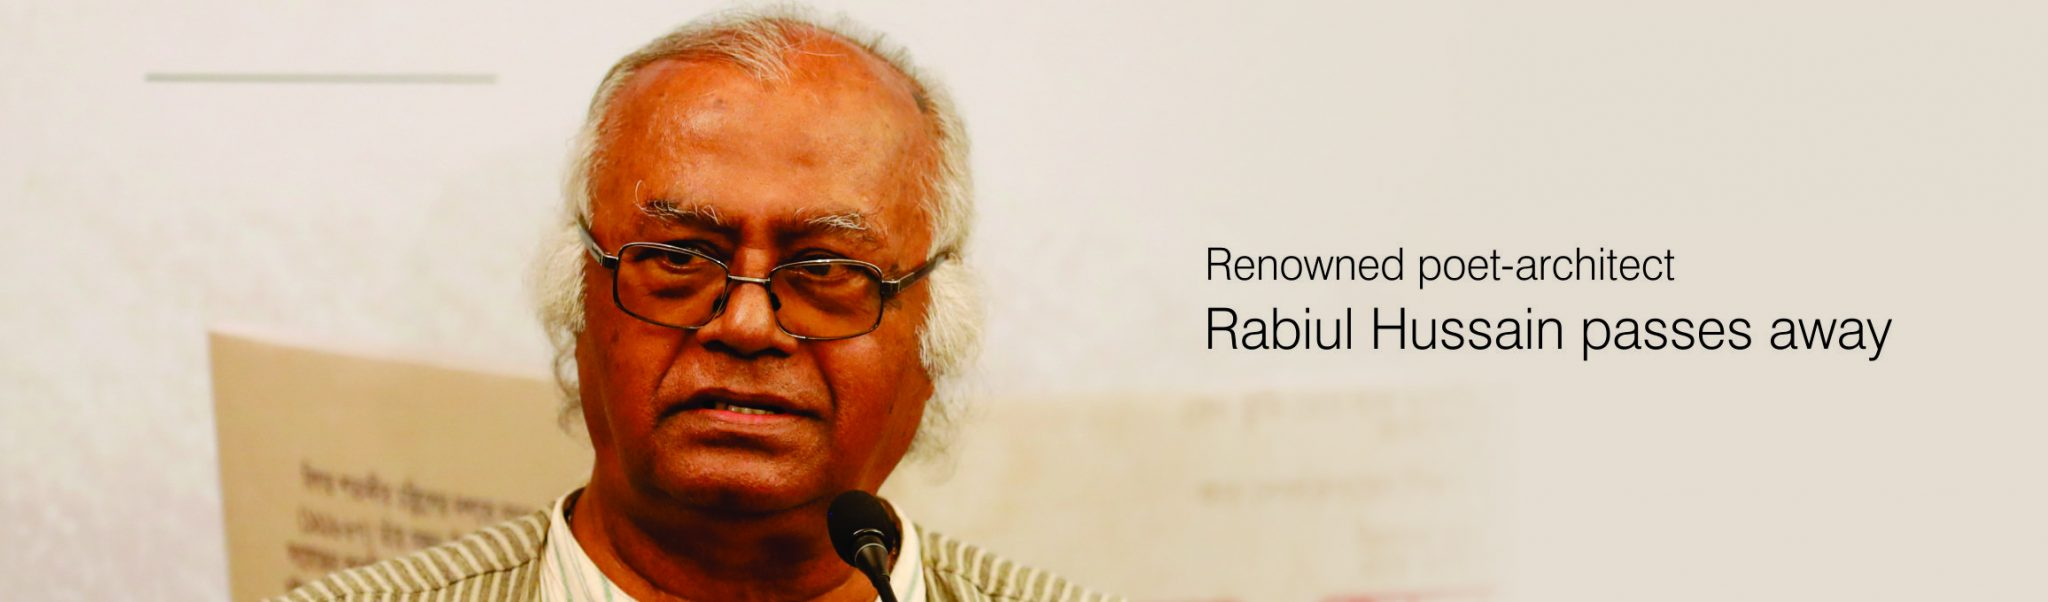 Bengal Foundation mourns the passing of Rabiul Husain